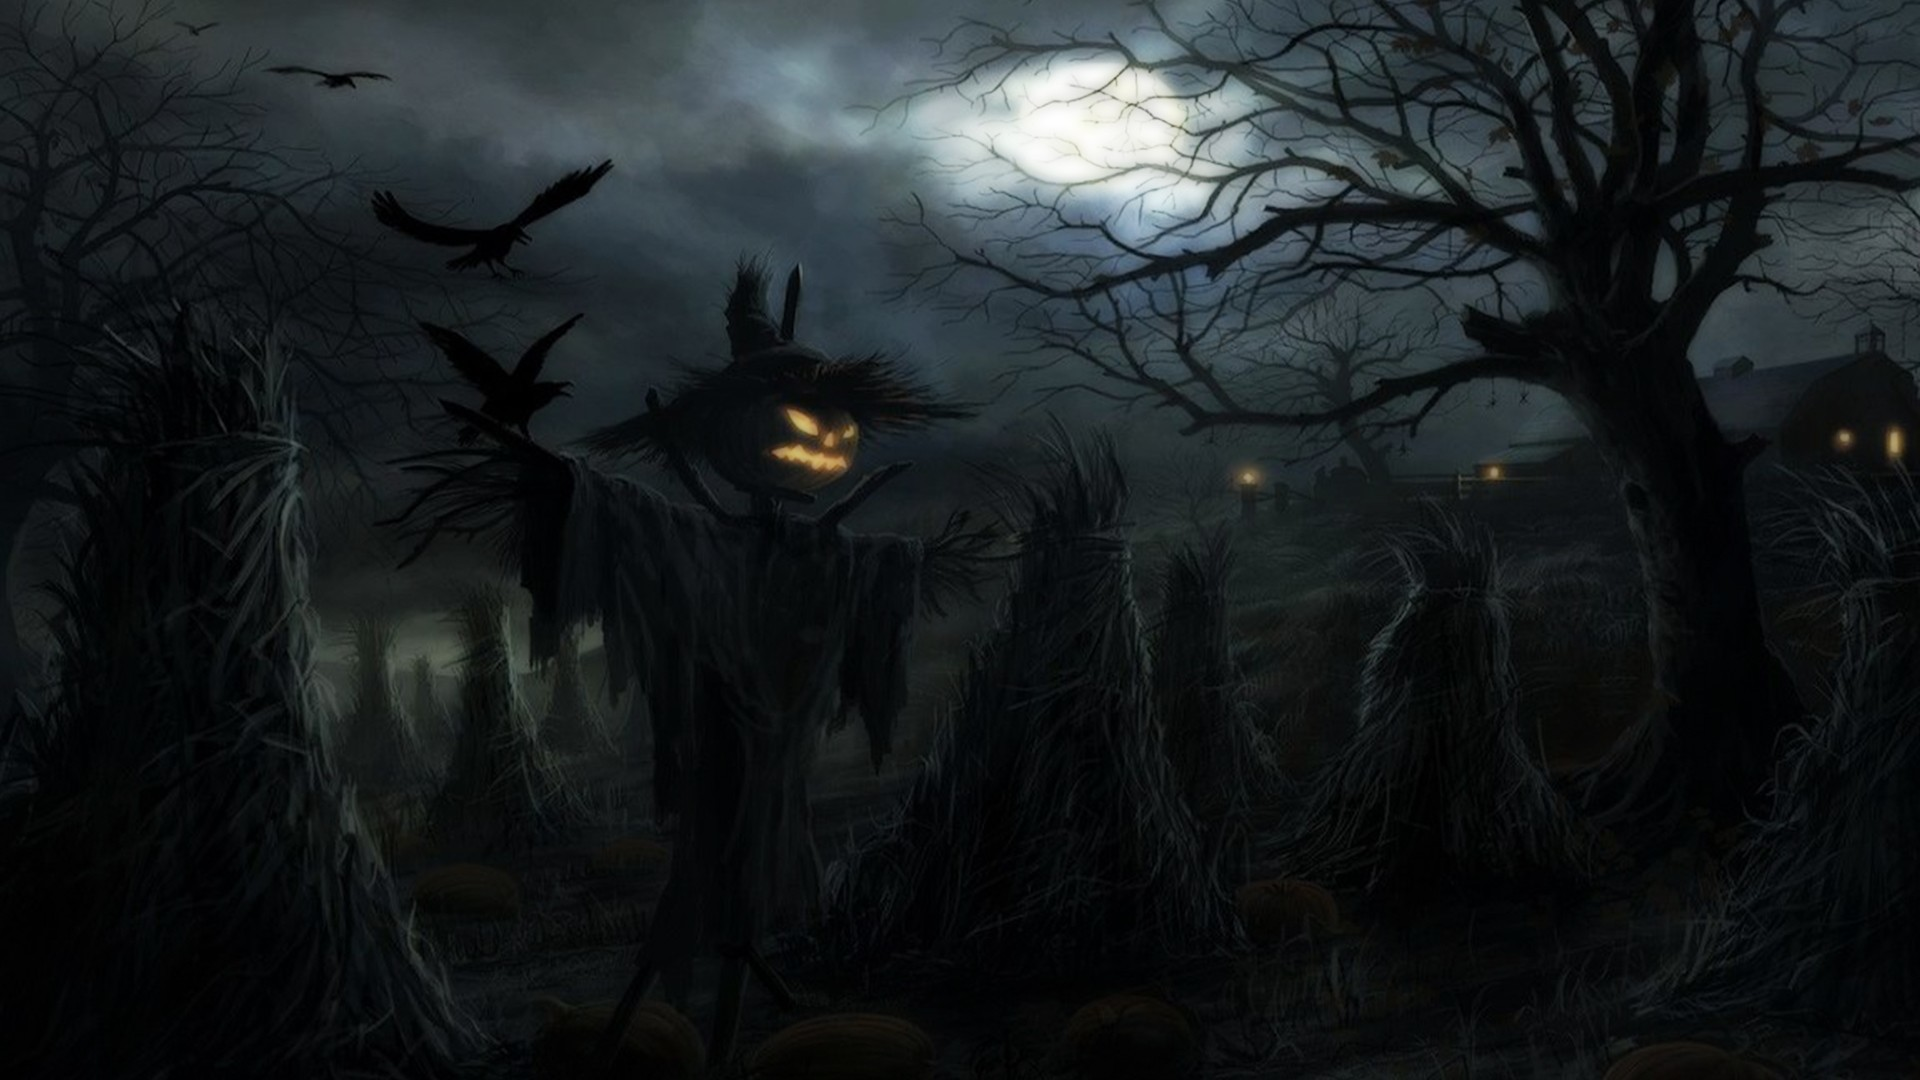 1920x1080 - Scary Halloween Background 47